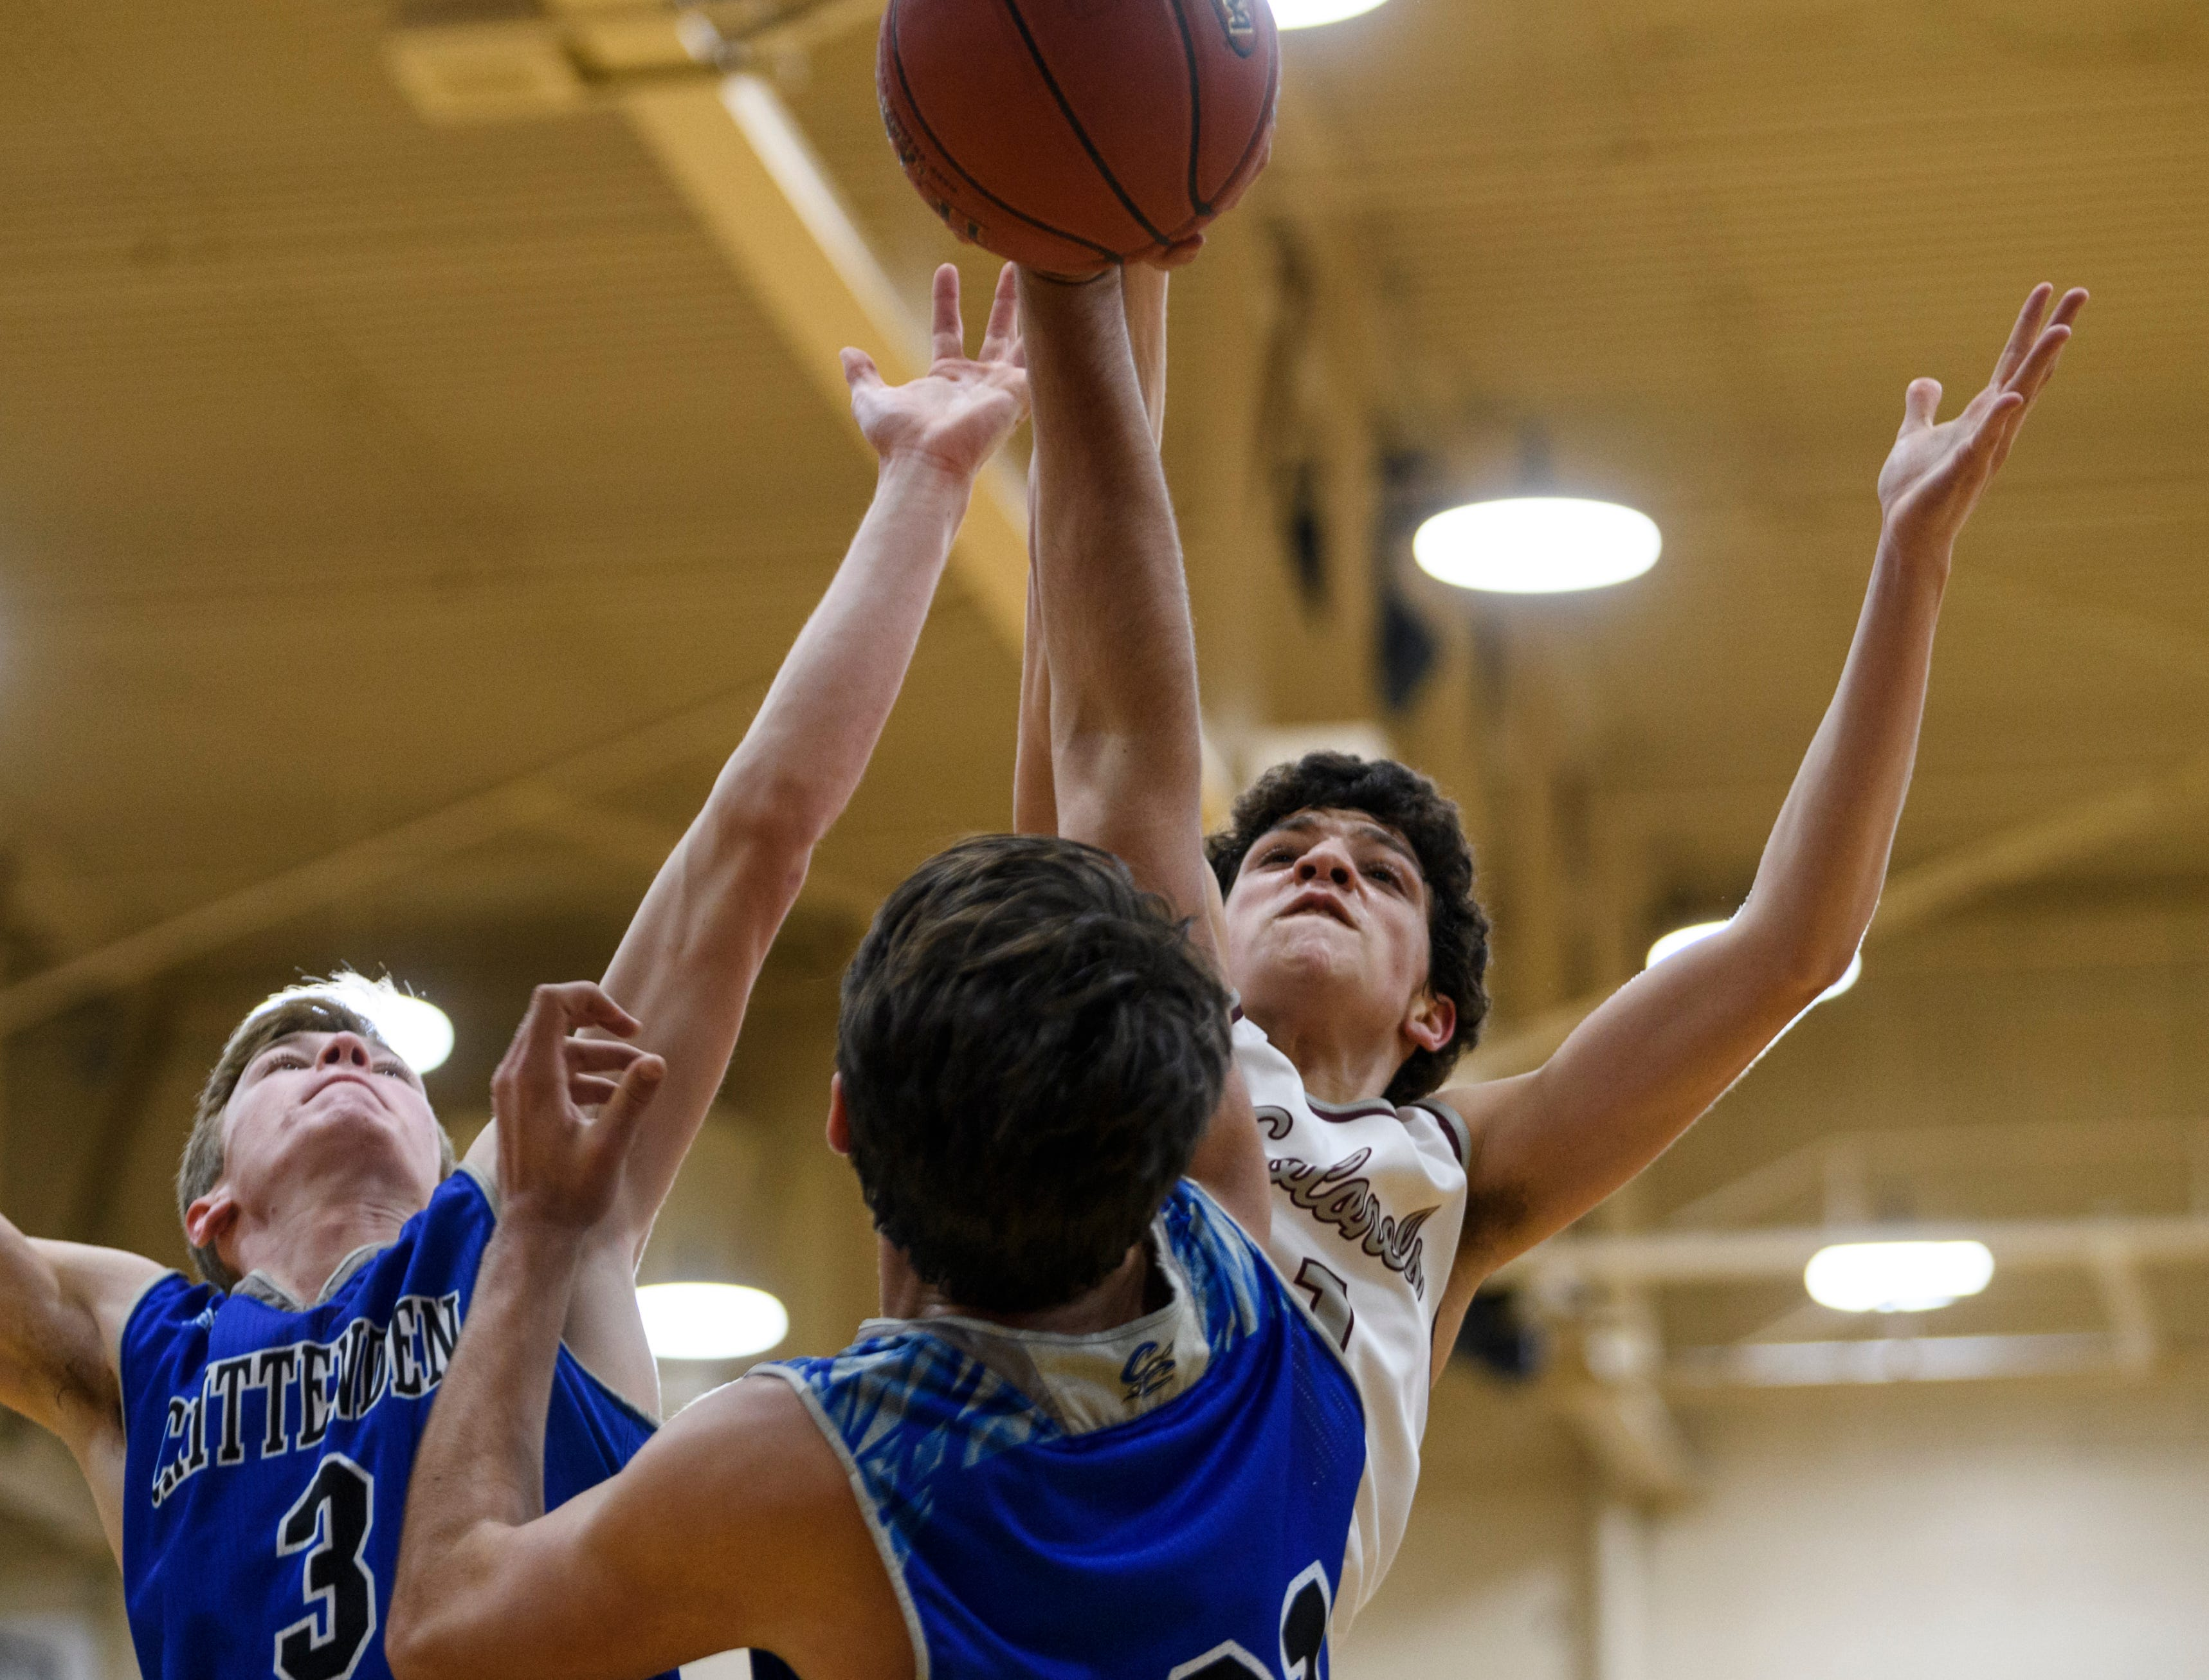 Crittenden County's Sawyer Towery (3) and Preston Turley (31) fight Henderson's Corey Stewart (1) for possession of a rebound during the first quarter at Henderson County High School in Henderson, Ky., Tuesday, Dec. 18, 2018. The Colonels defeated the Rockets 88-52.